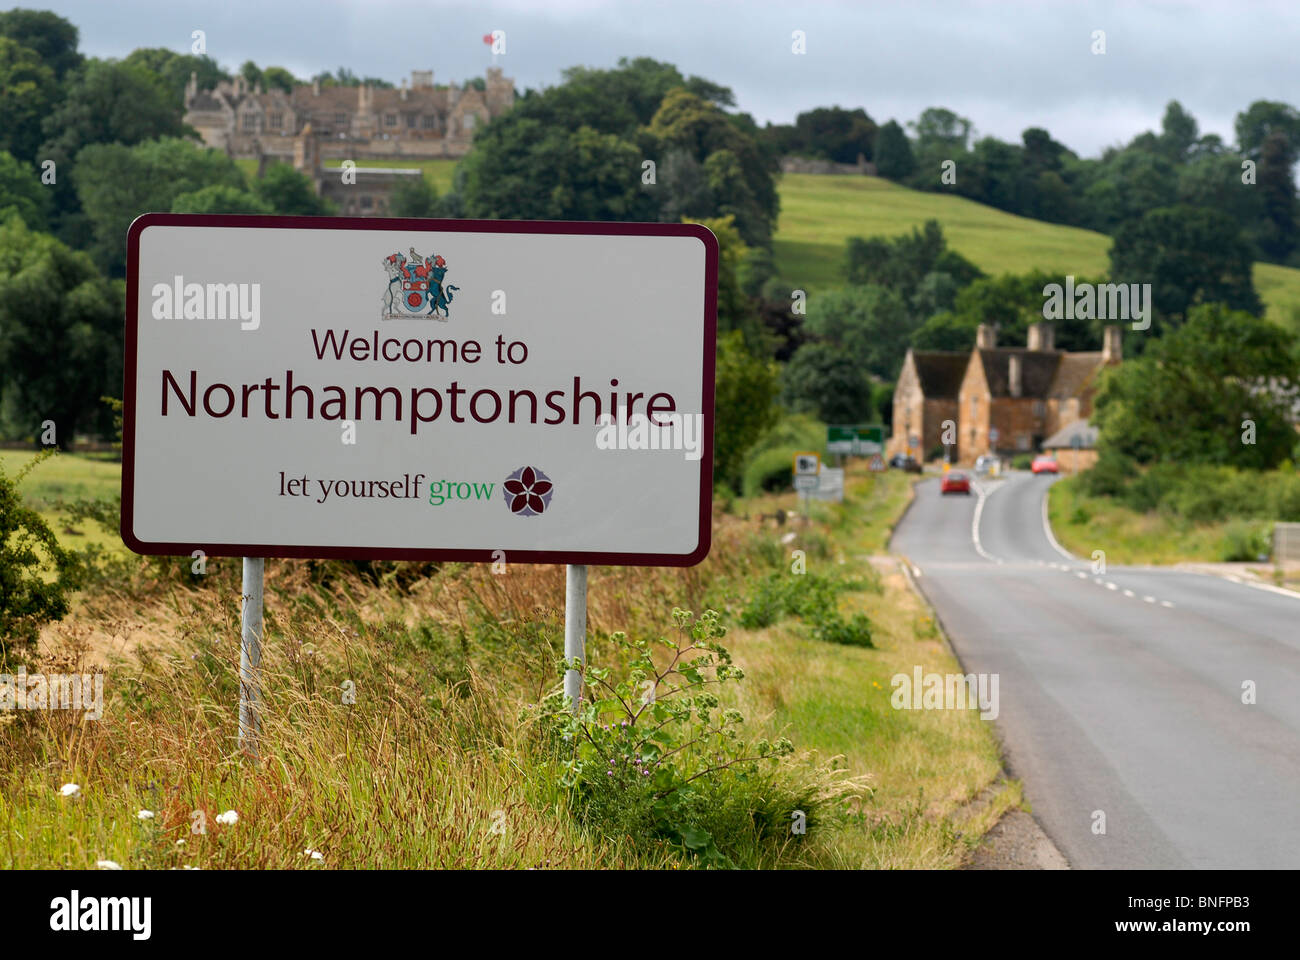 The new welcome to Northants sign outside Rockingham, 15-July, 2010. Commission Bri0024489 PHOTO © JOHN ROBERTSON - Stock Image